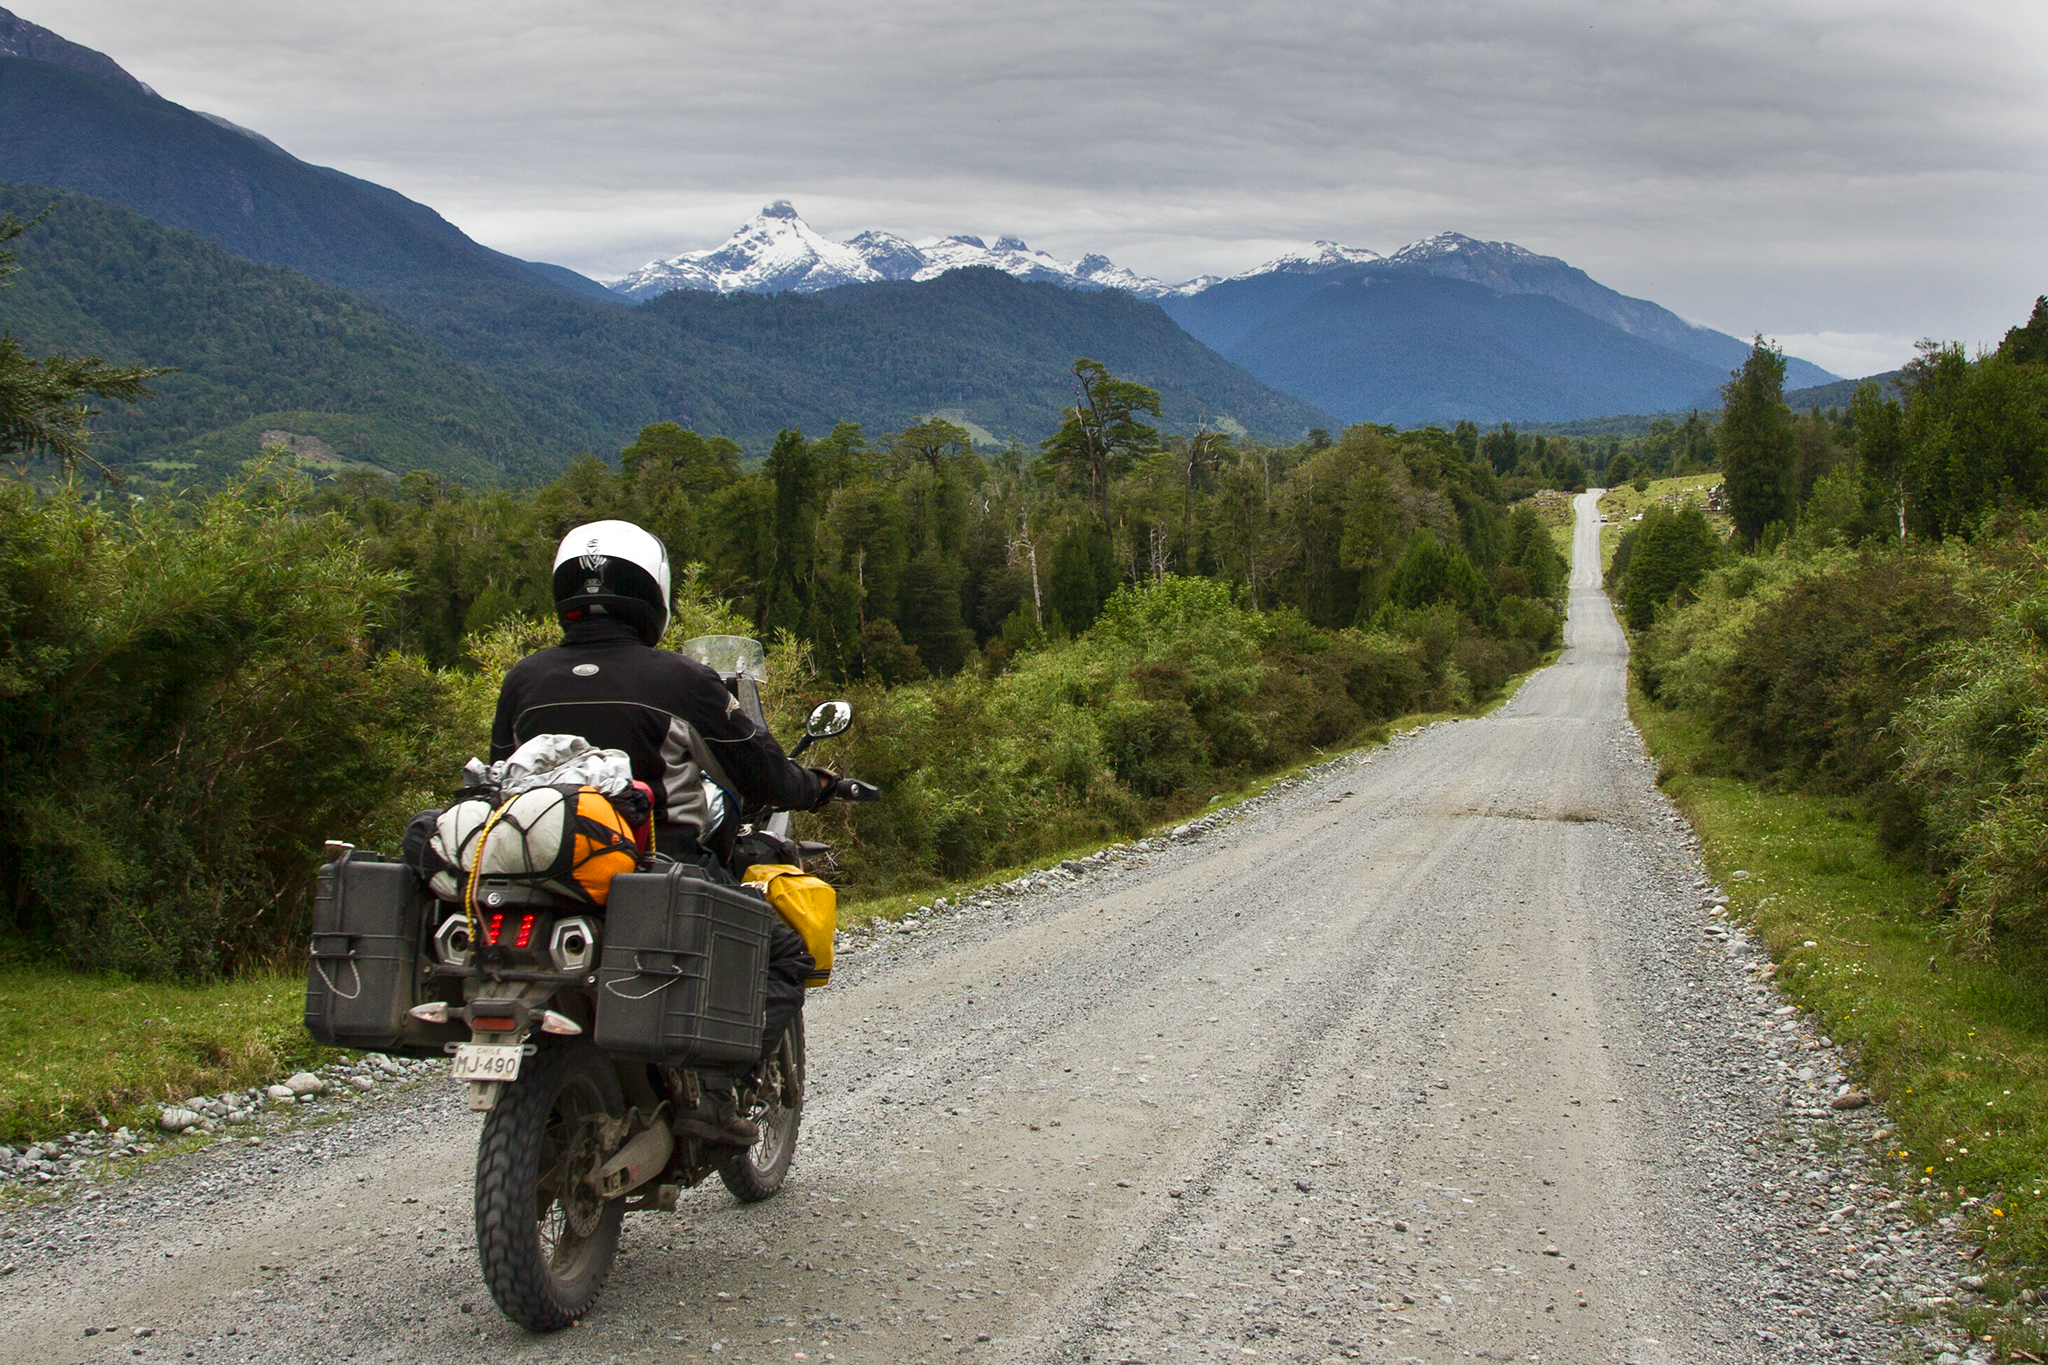 The man-made spine of Chilean Patagonia is the unpaved Ruta 7, better-known as the Carretera Austral. Spanning 770 miles from Puerto Montt to Villa O-Higgins, the unpaved highway meanders through dense Valdivian temperate rain forests, glacial fjords and Andean mountains. At a handful of small towns along the way, one can opt to cross the border into Argentina by braving the hanging valleys of the Andes and be spit out into the sprawling emptiness of golden Patagonian steppe.